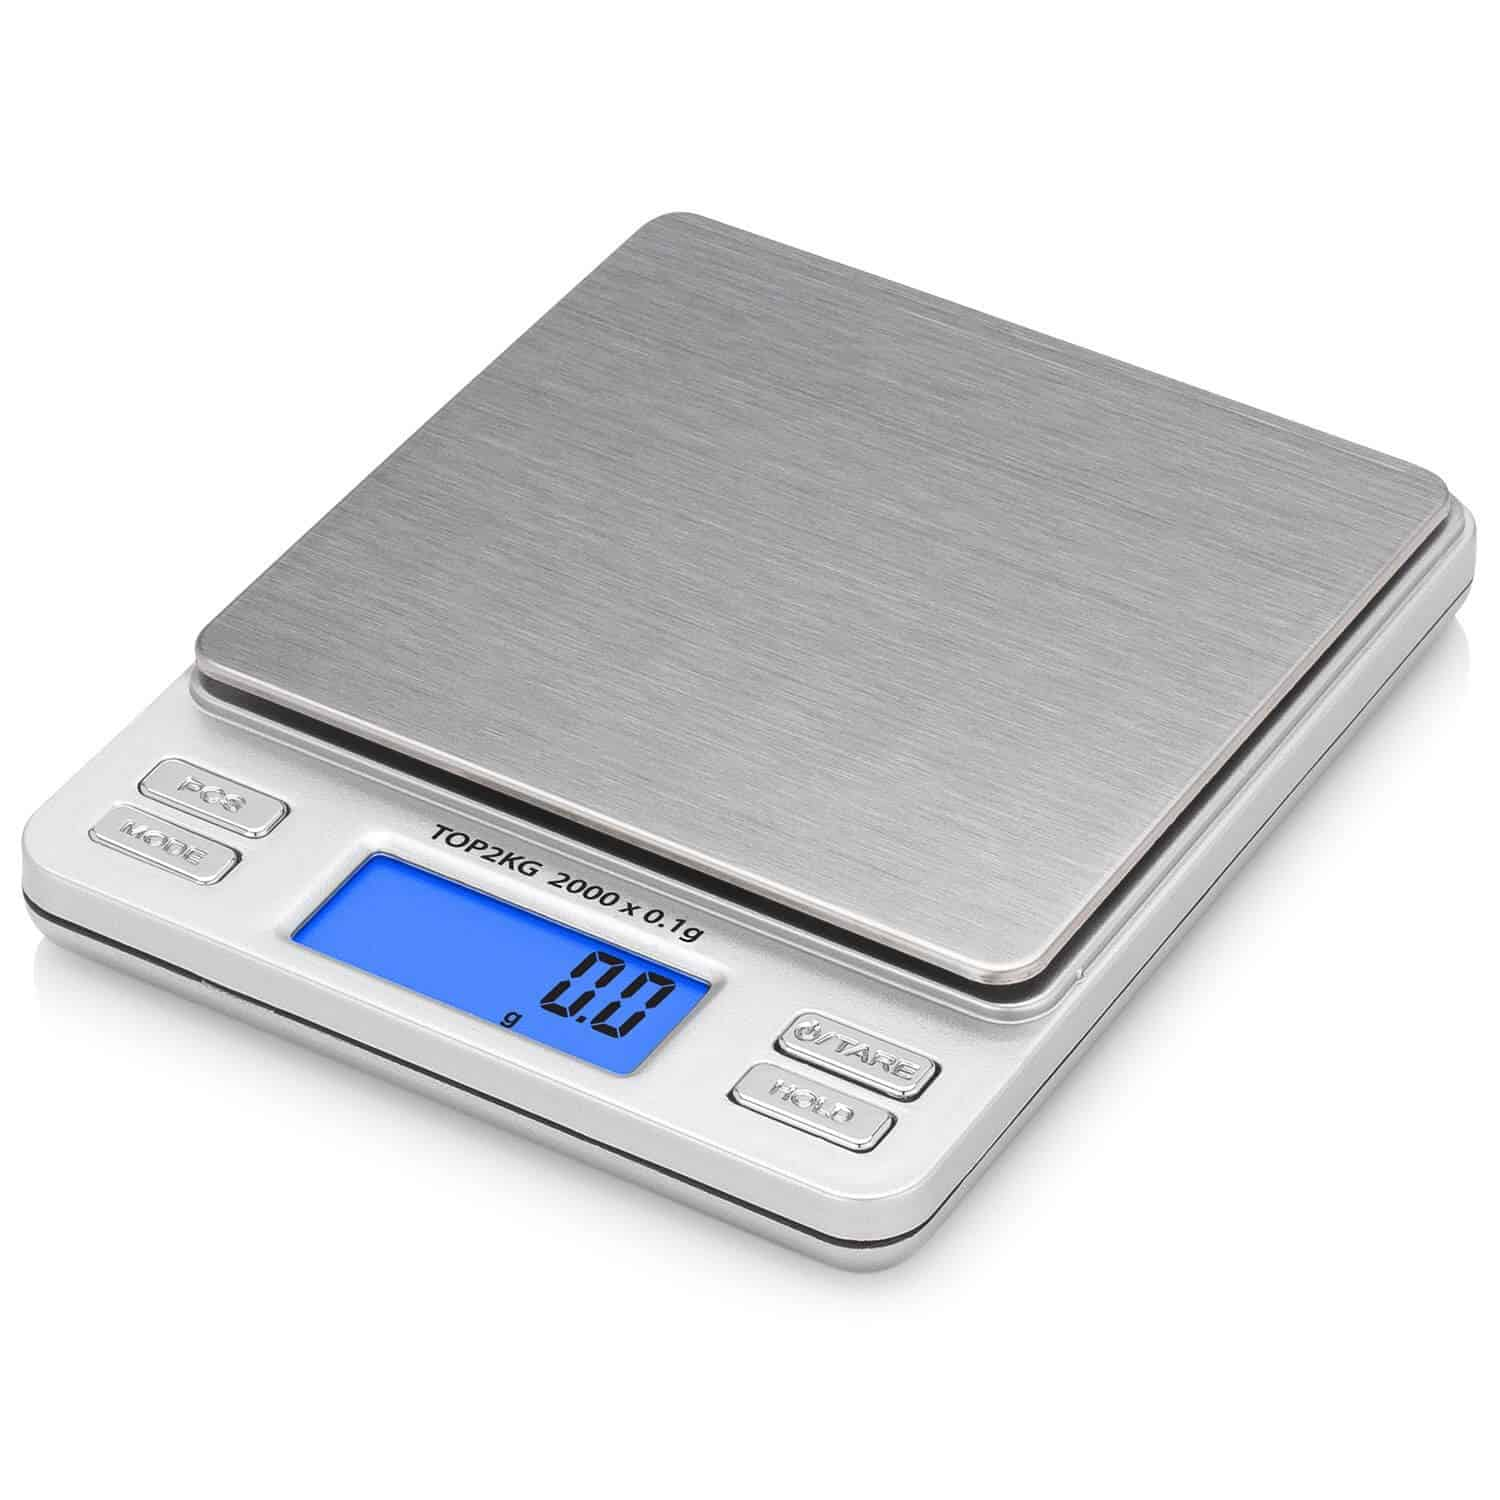 Photo of a postal scale with white background